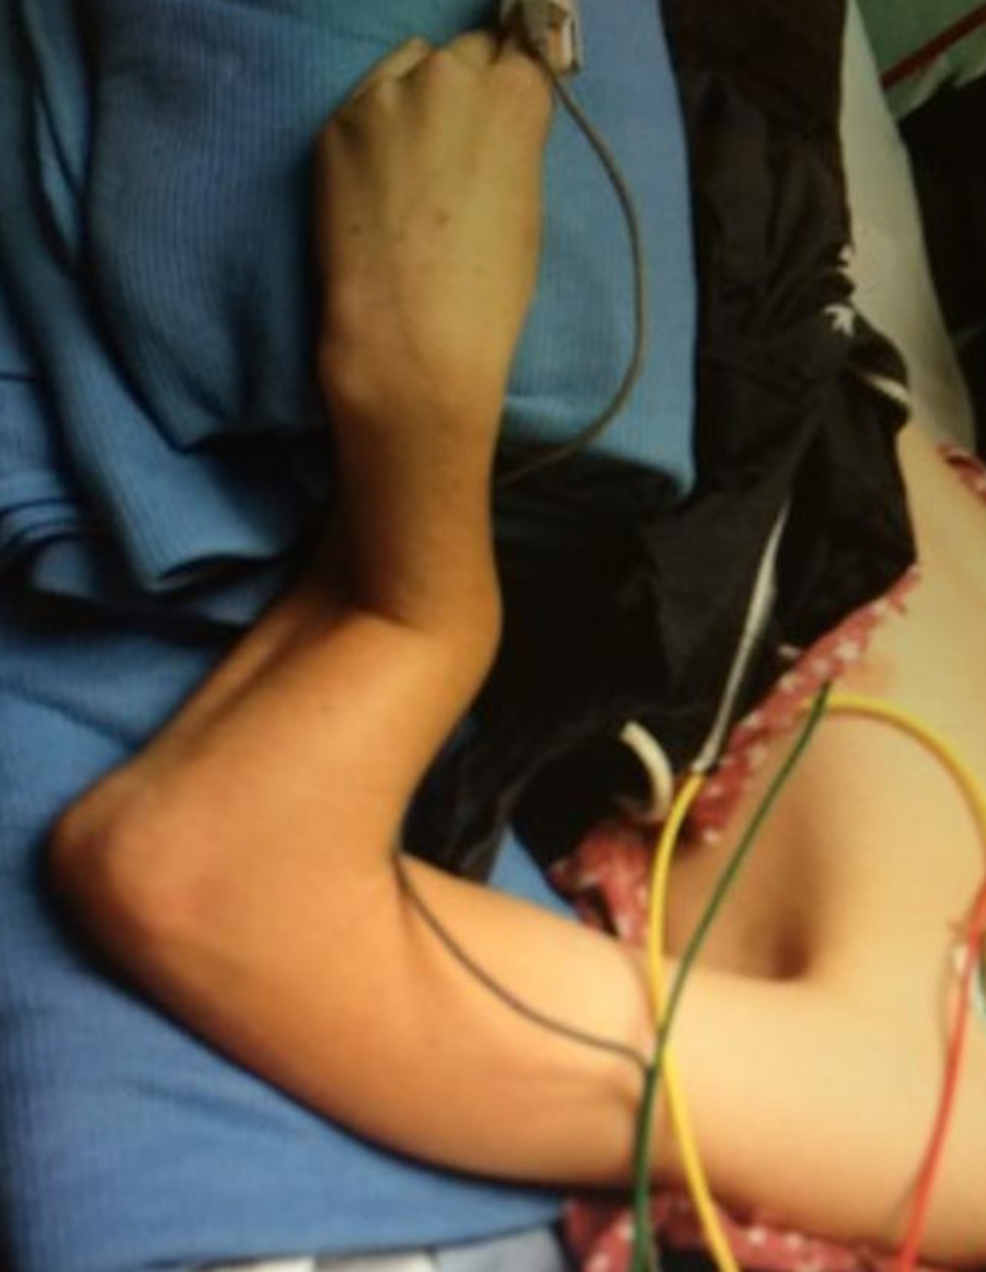 Clinical-photograph-of-the-affected-limb-on-presentation